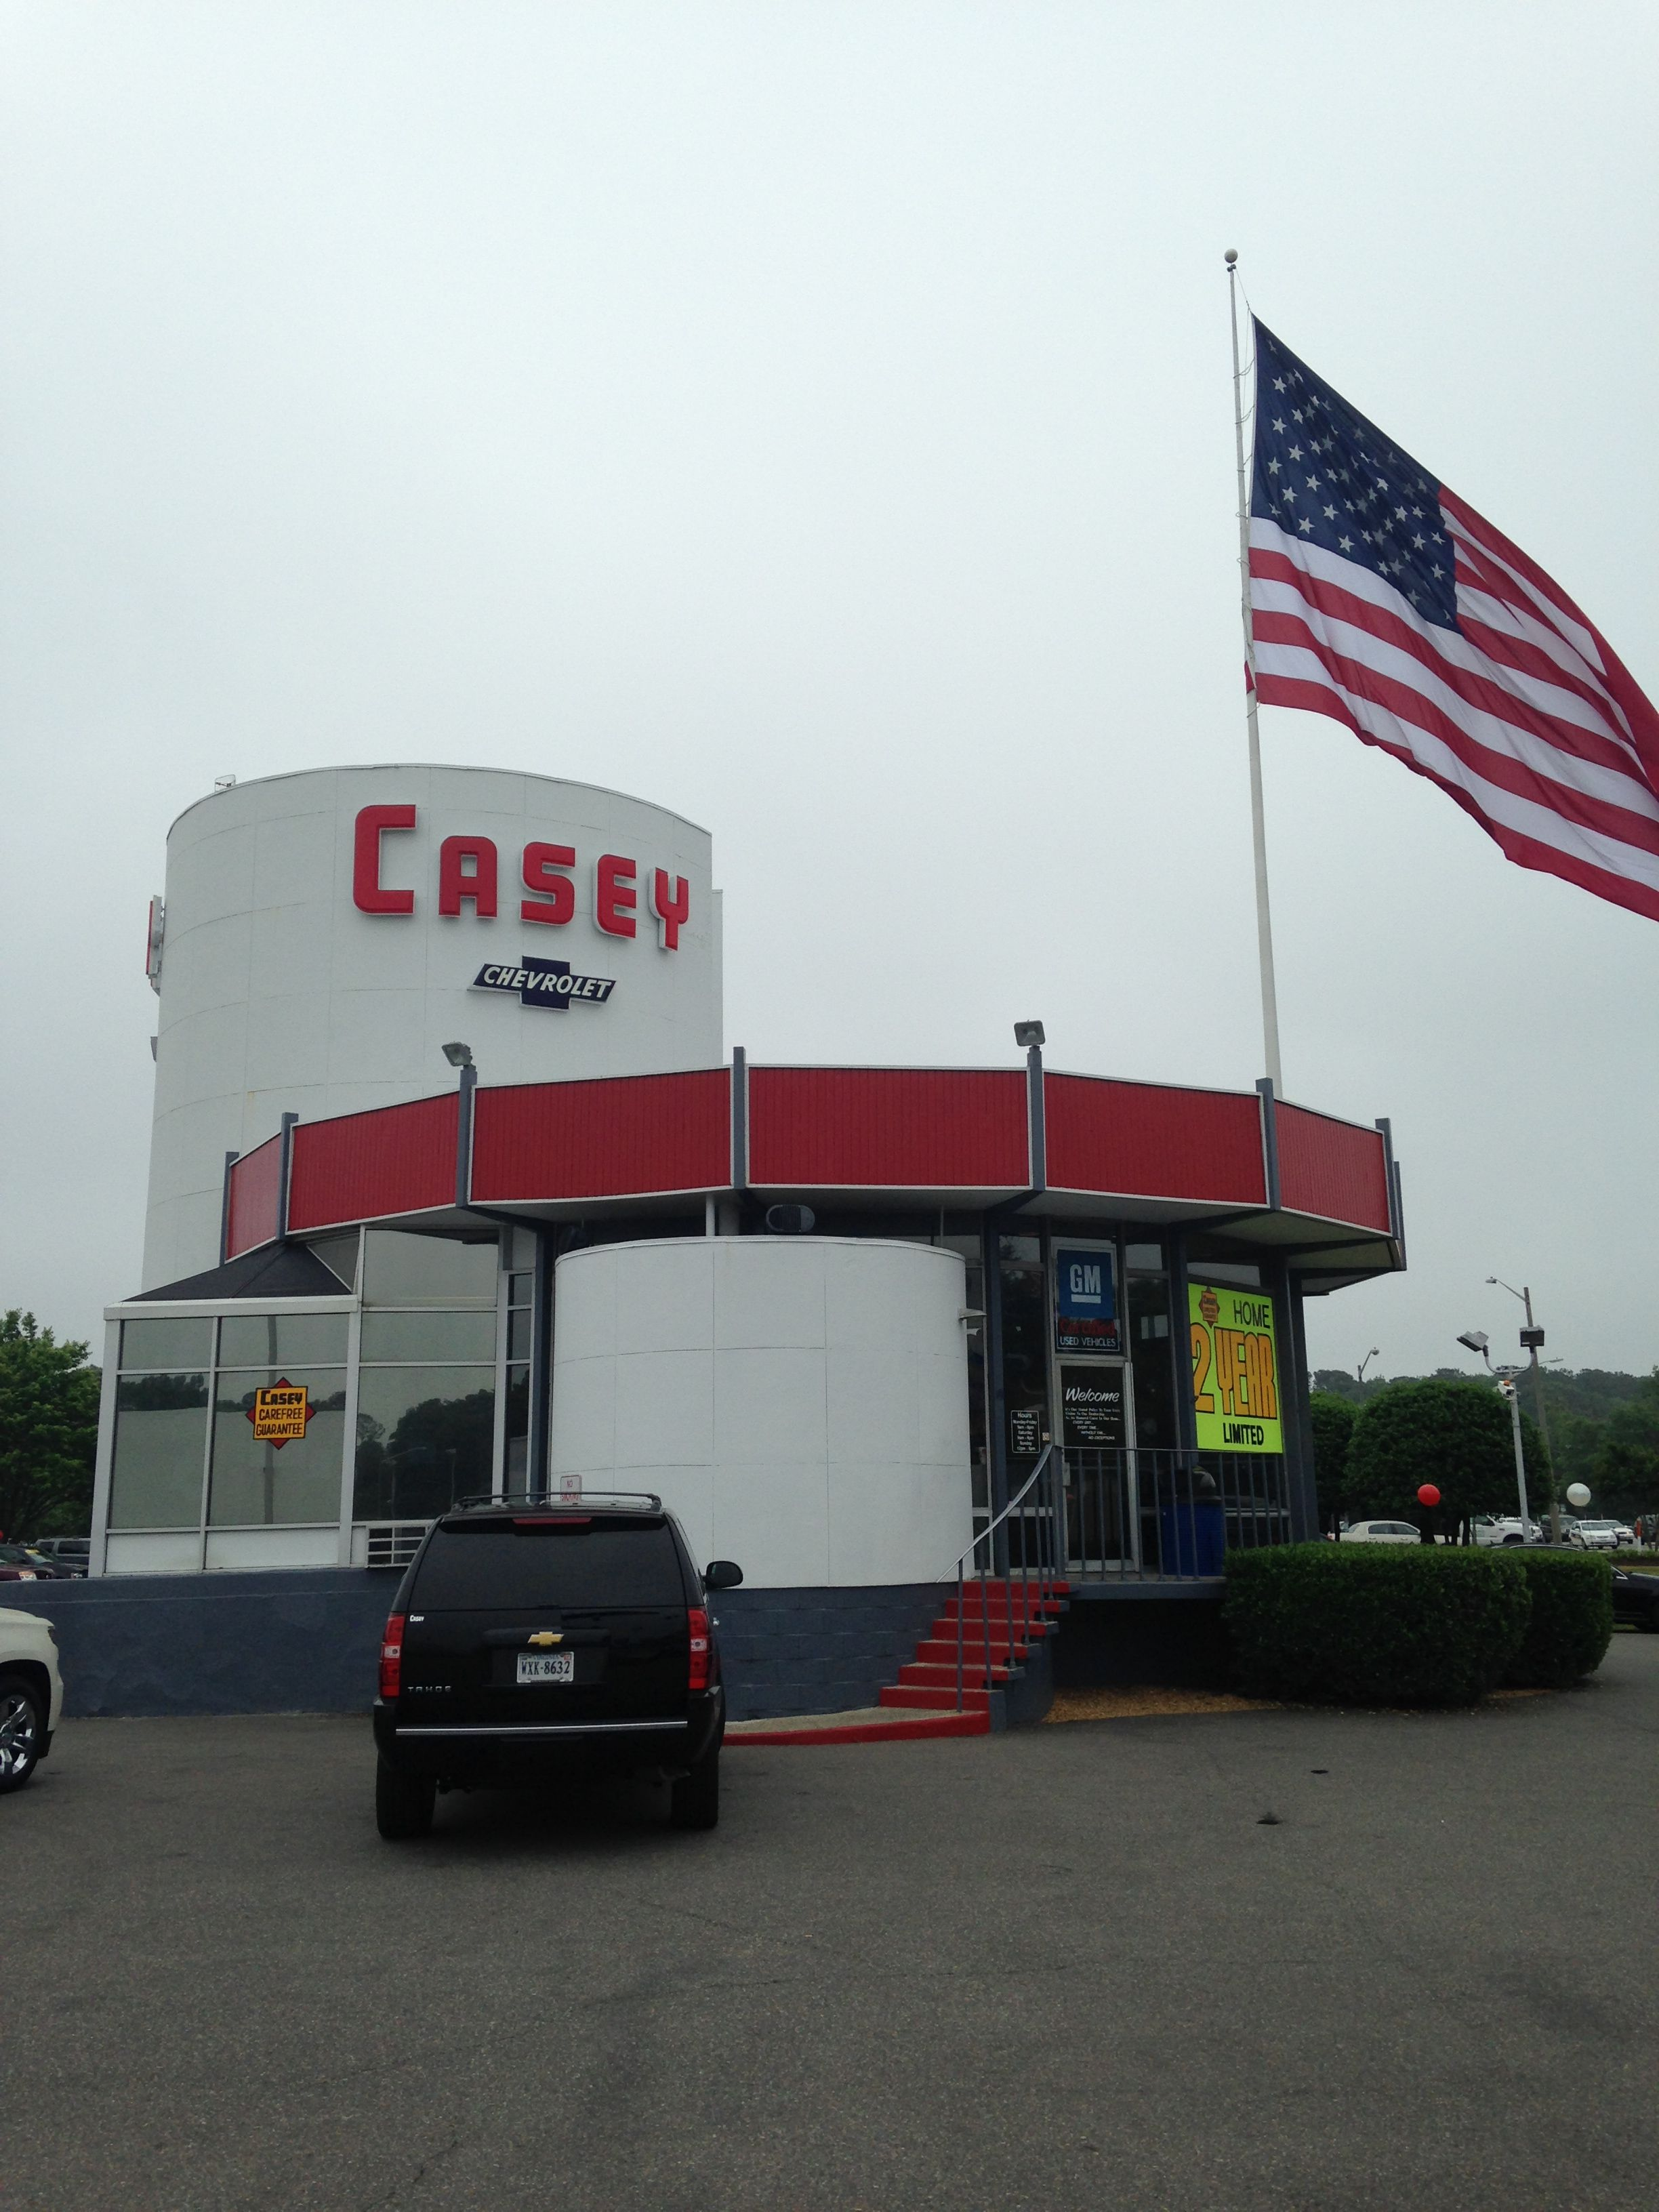 Original Buidling For Casey Chevrolet In Newport News Va Newport News Virginia Is For Lovers Portsmouth